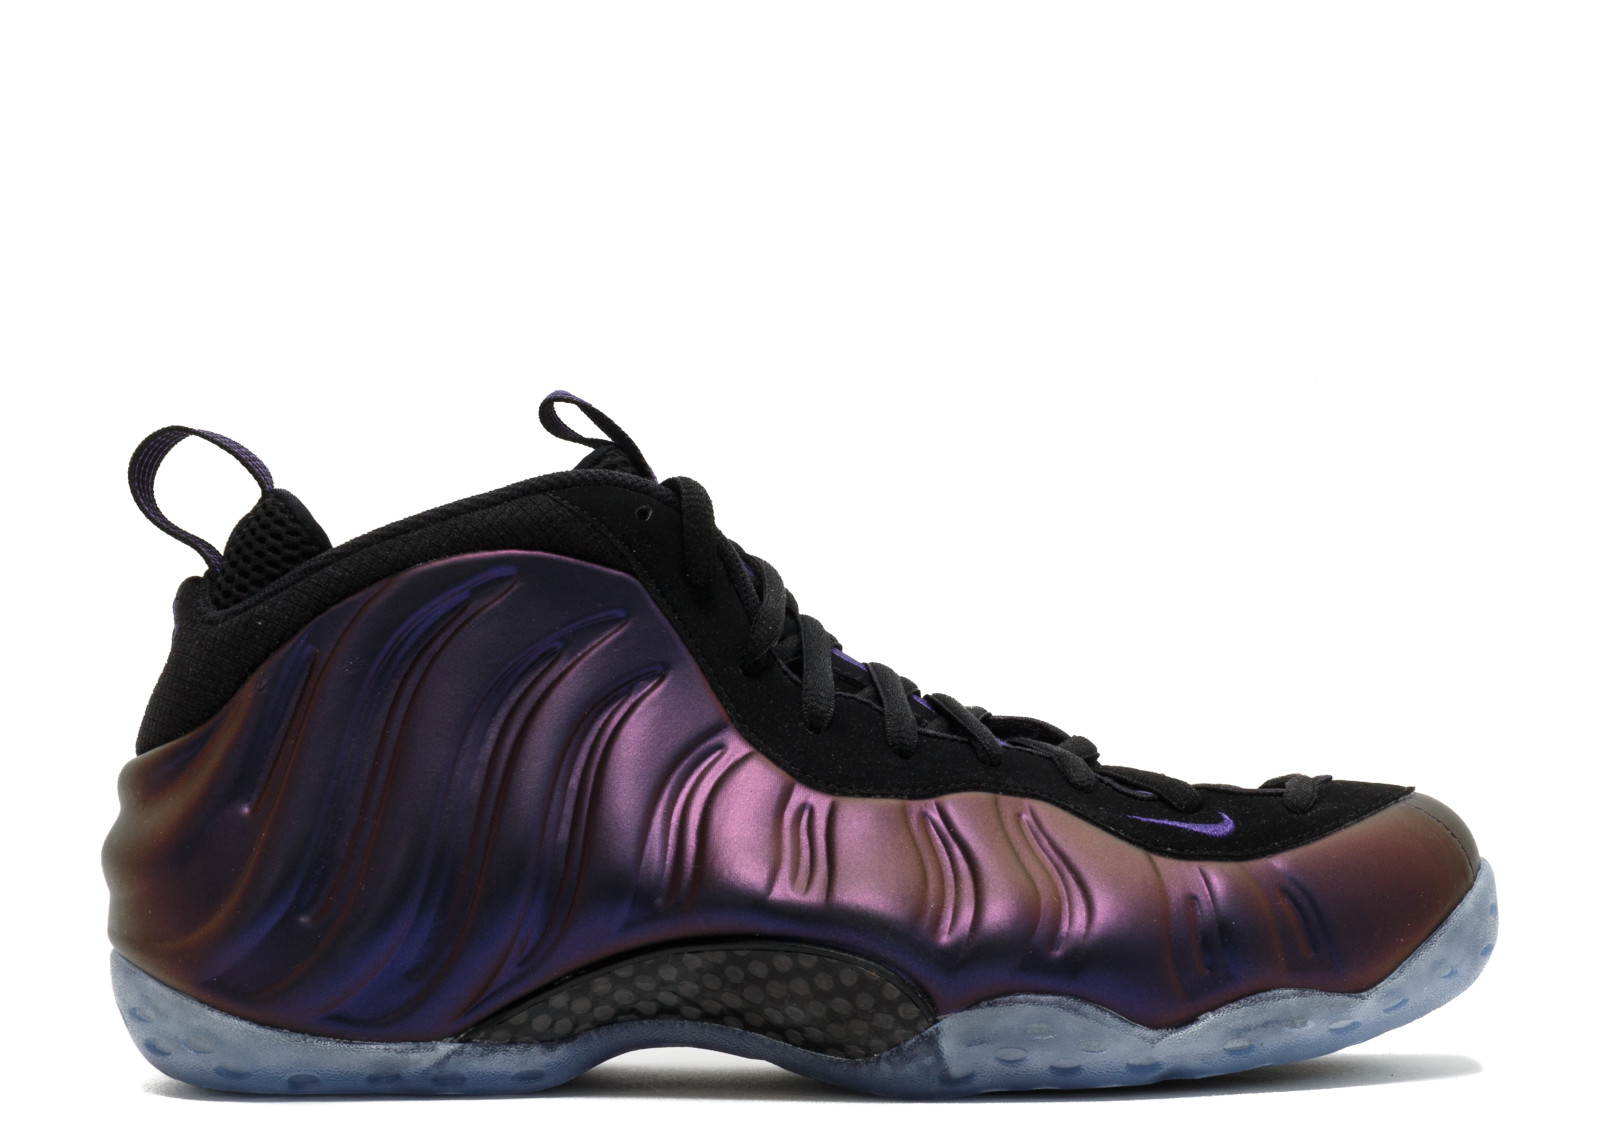 Air Foamposite One Eggplant